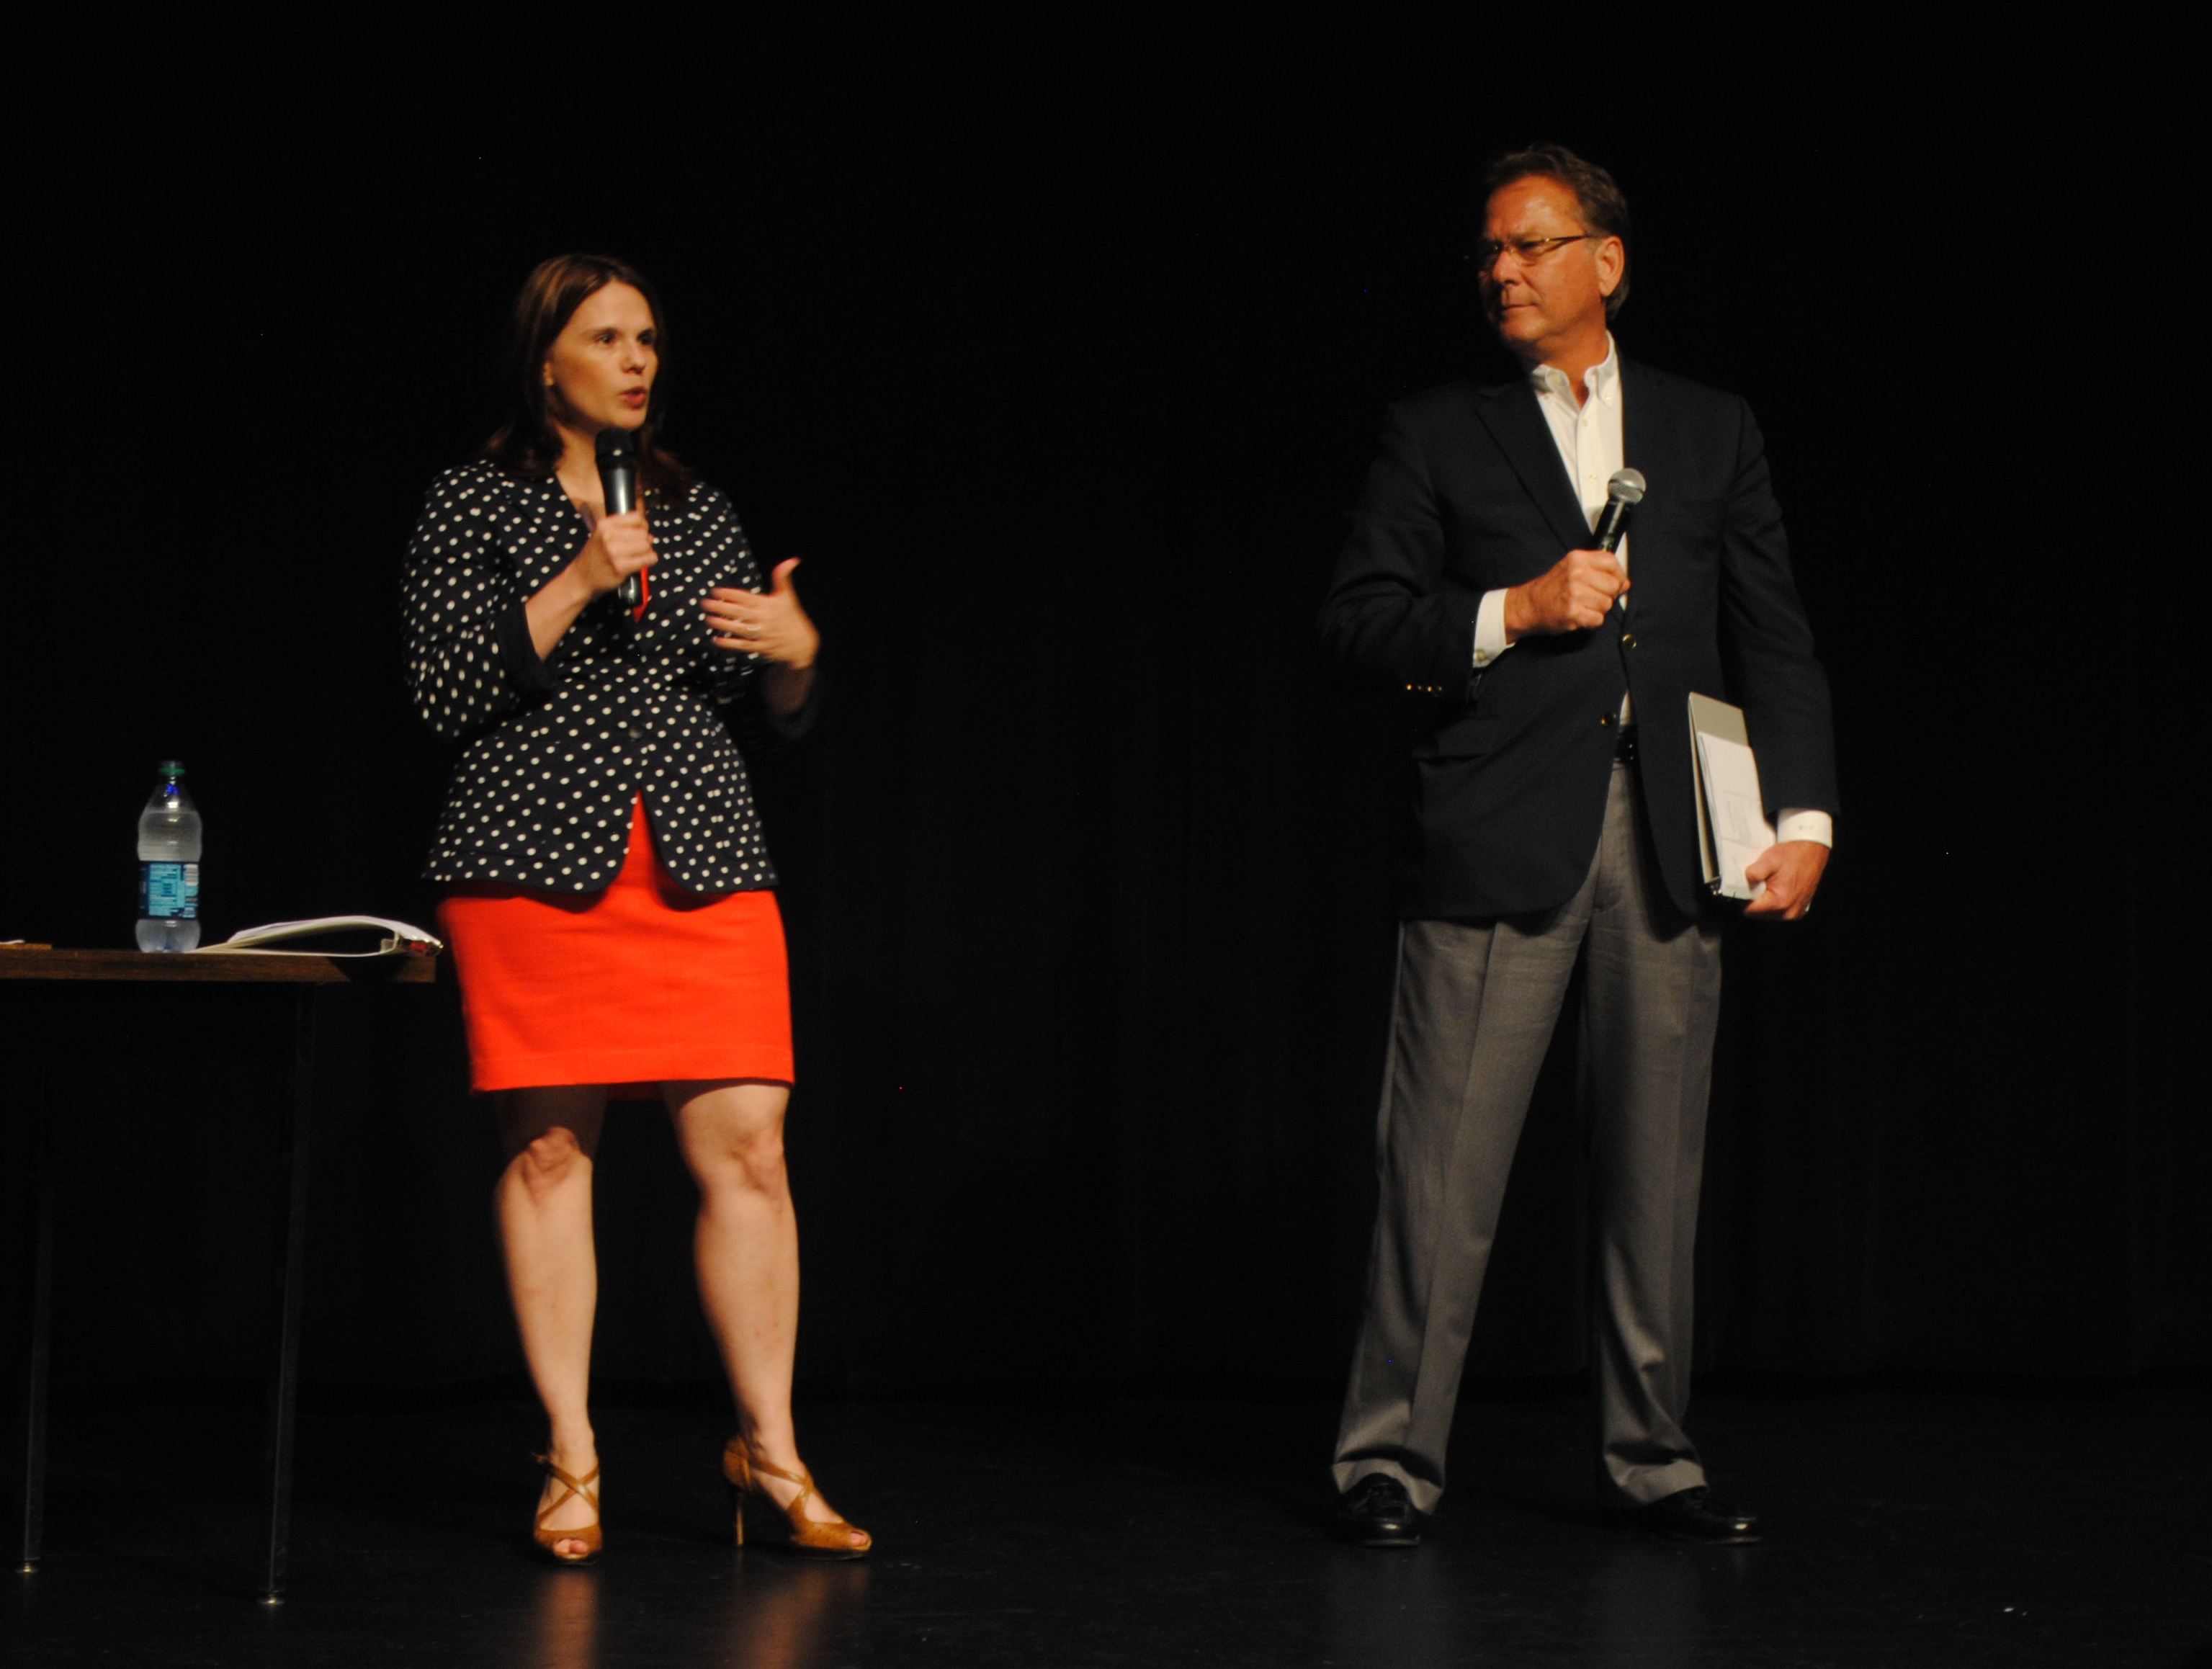 Houston-based Elder Law attorneys Christina Lesher and Wesley E. Wright spoke on the importance of early estate planning at the Evelyn Rubenstein Jewish Community Center Tuesday night.